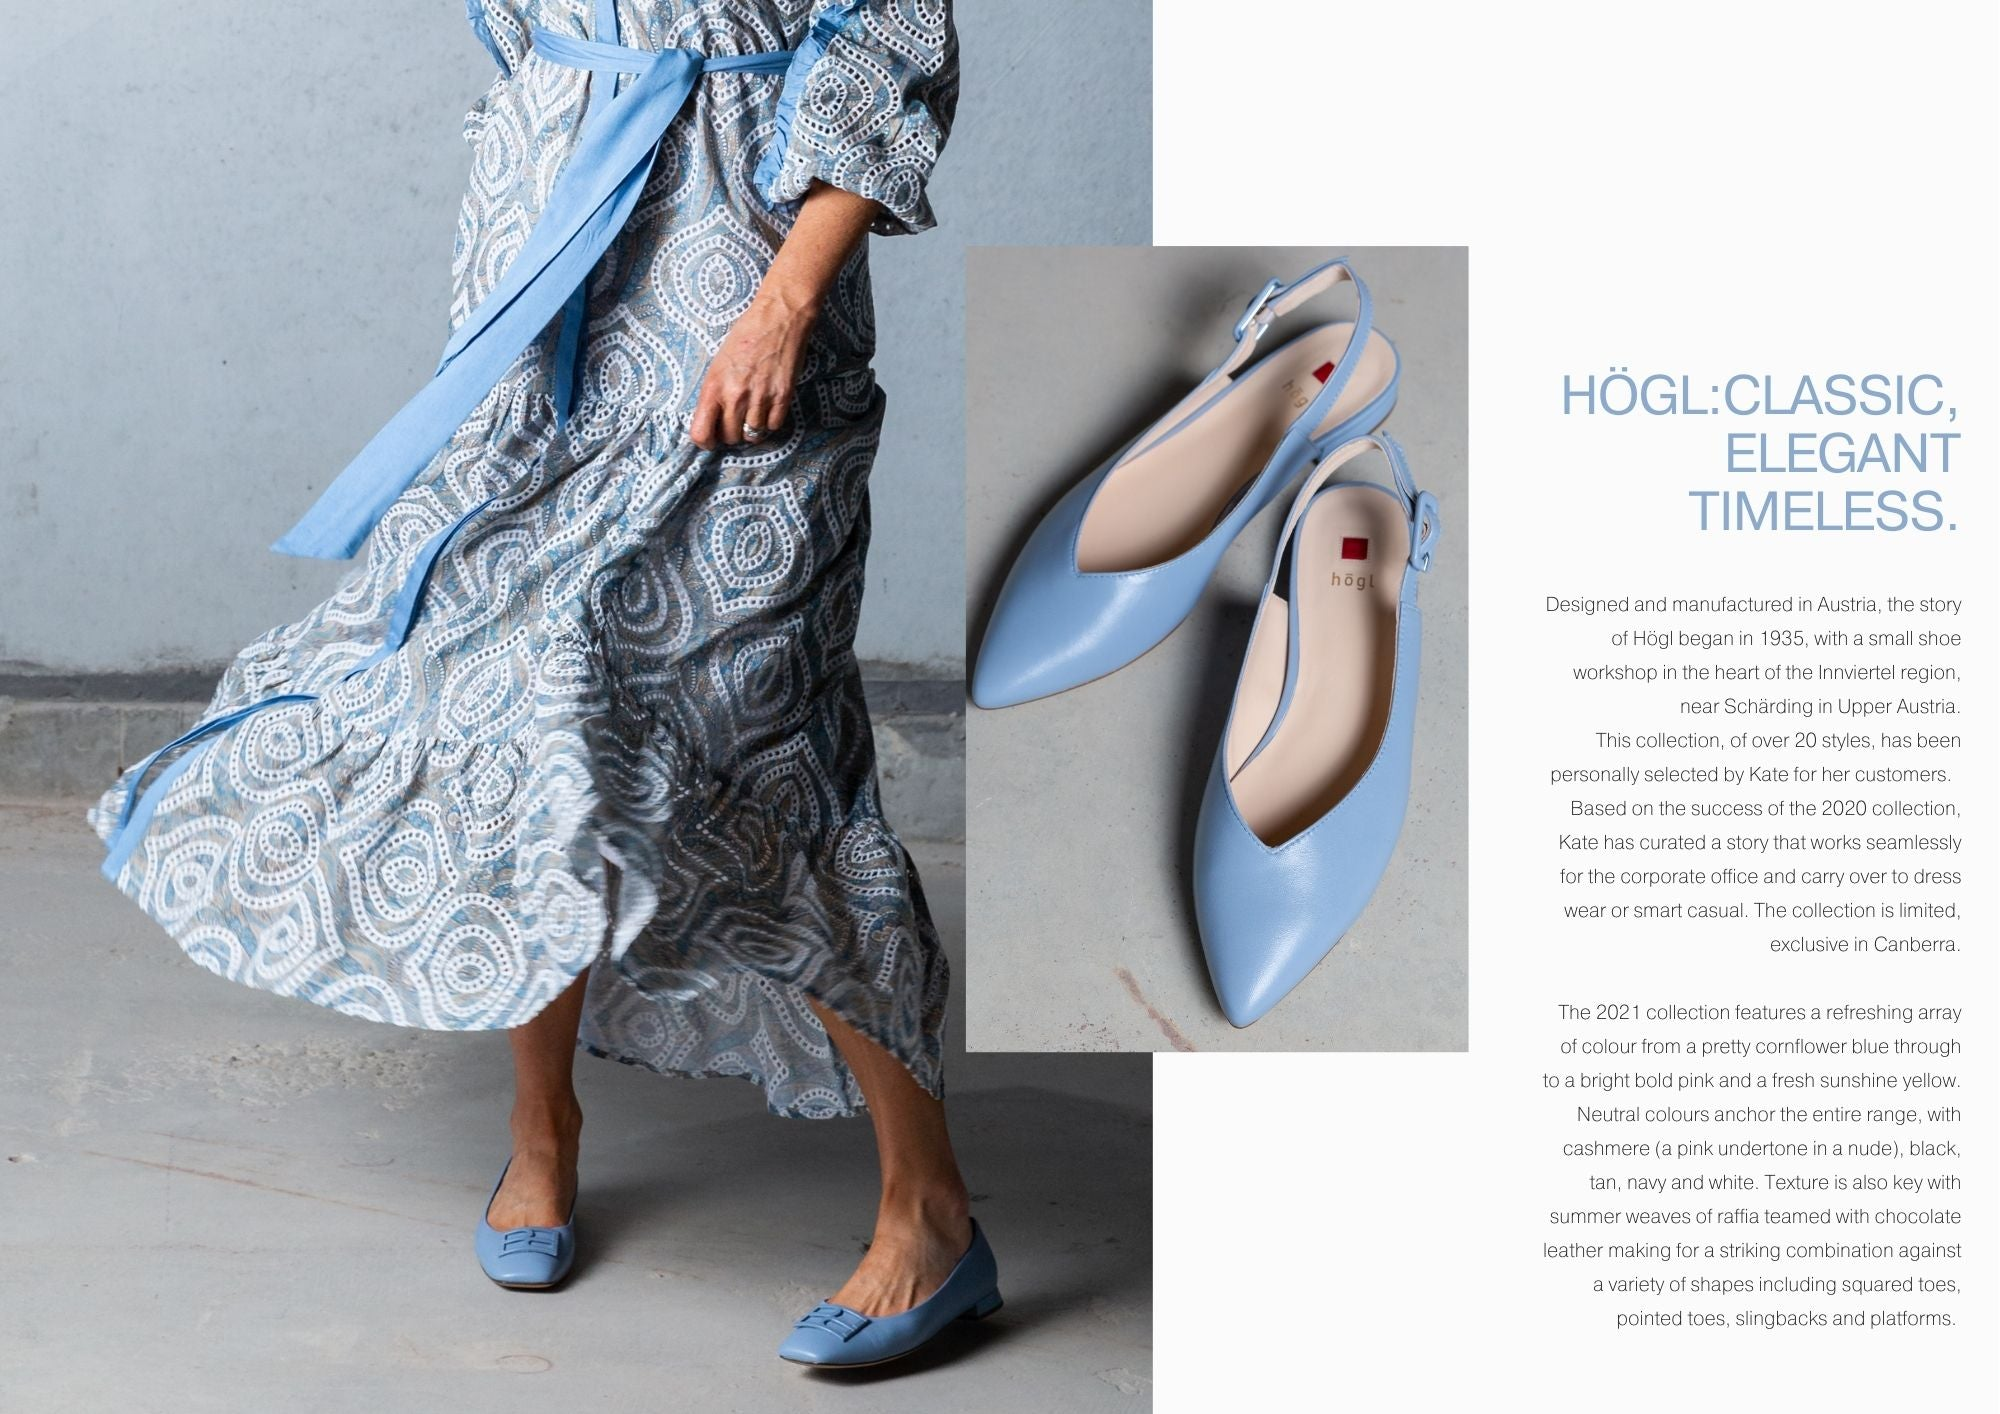 introducing hogl women's shoes from Sissa Sorella